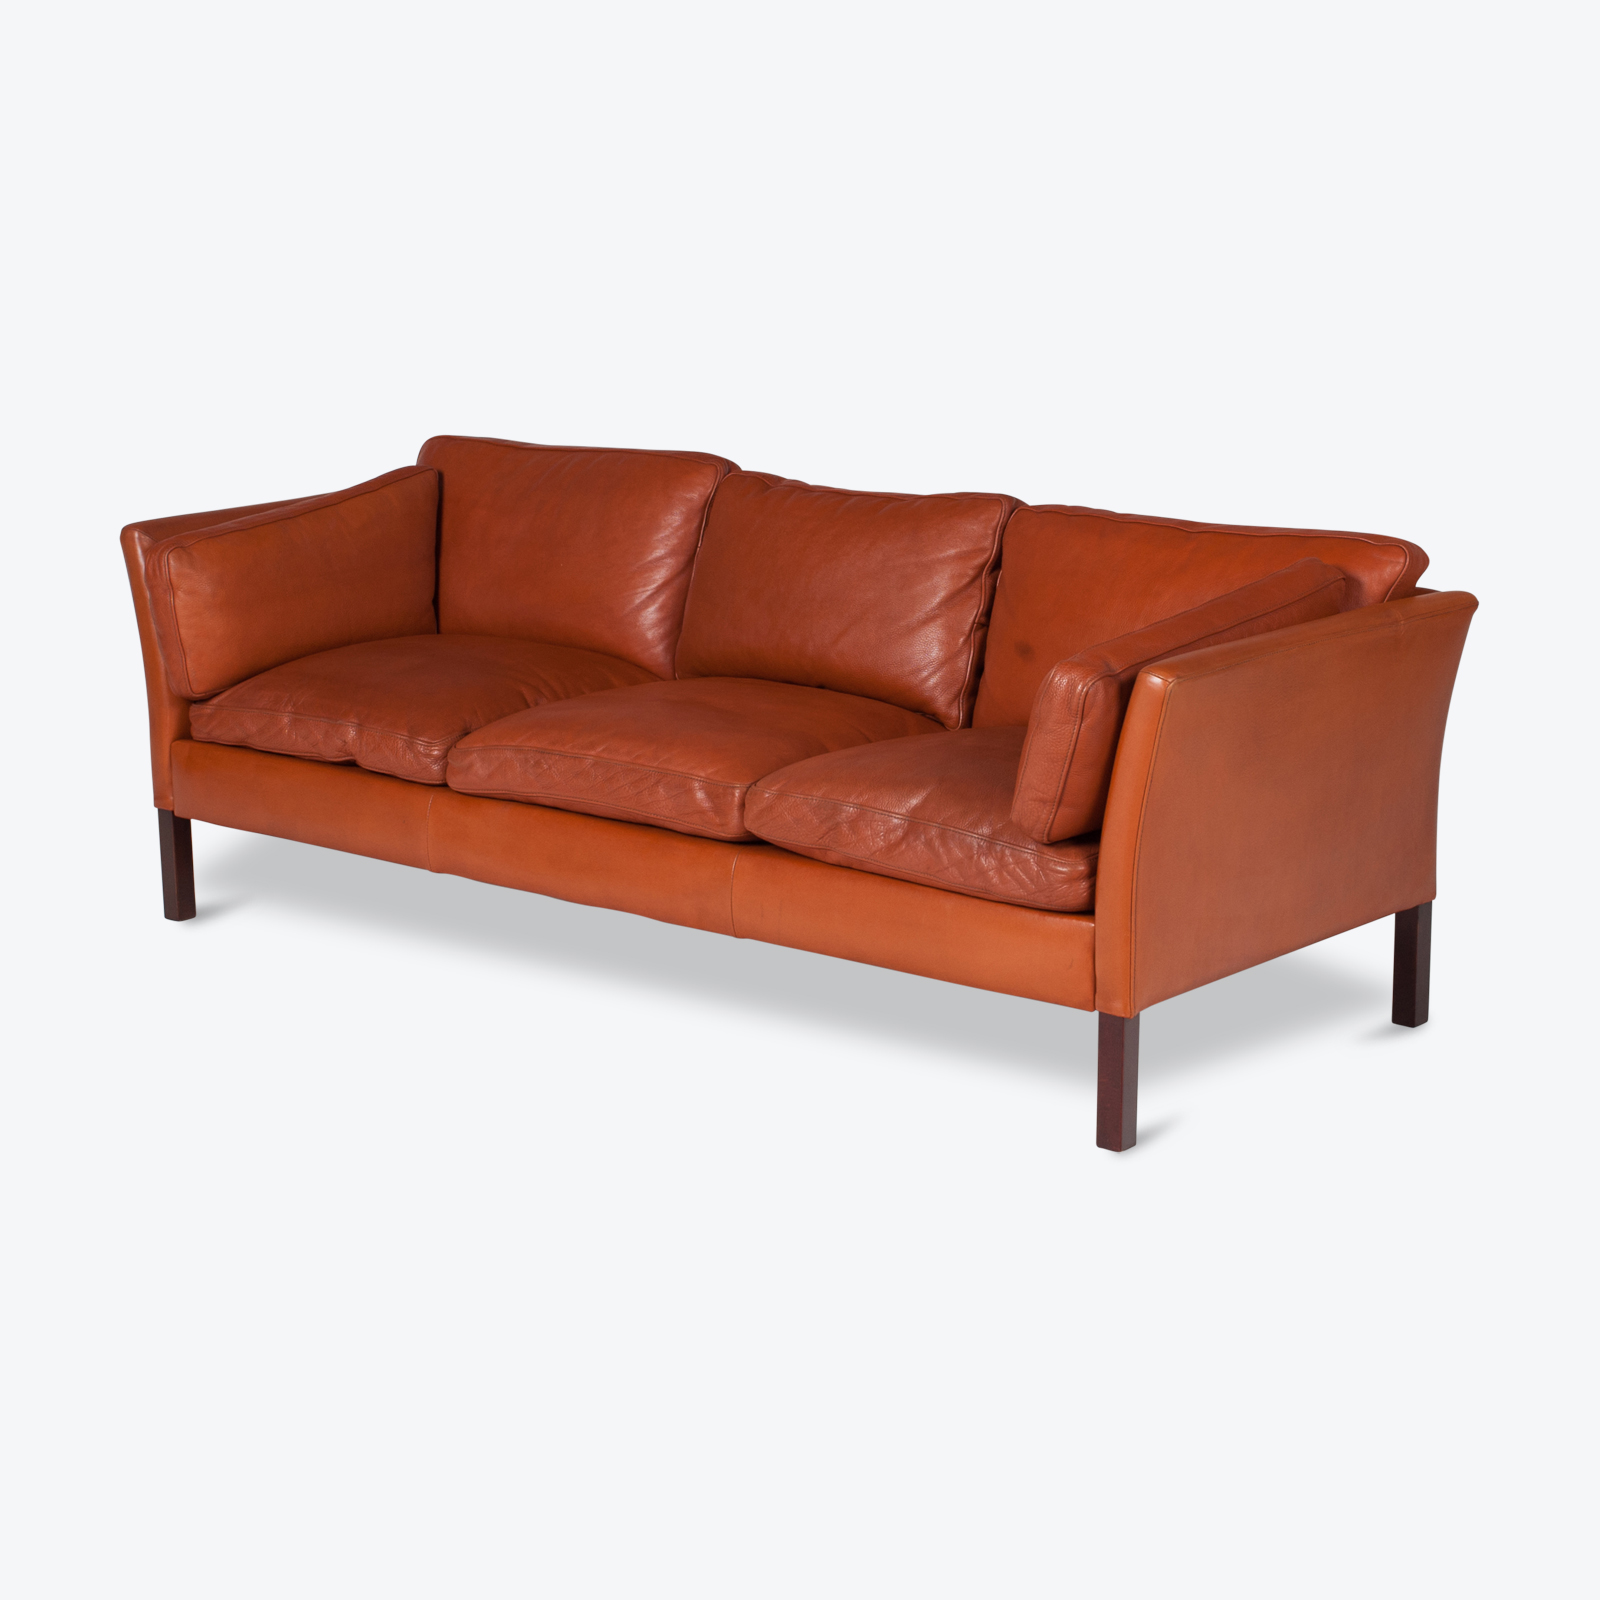 3 Seat Sofa By Stouby In Tan Leather, 1960s, Denmark Hero 1